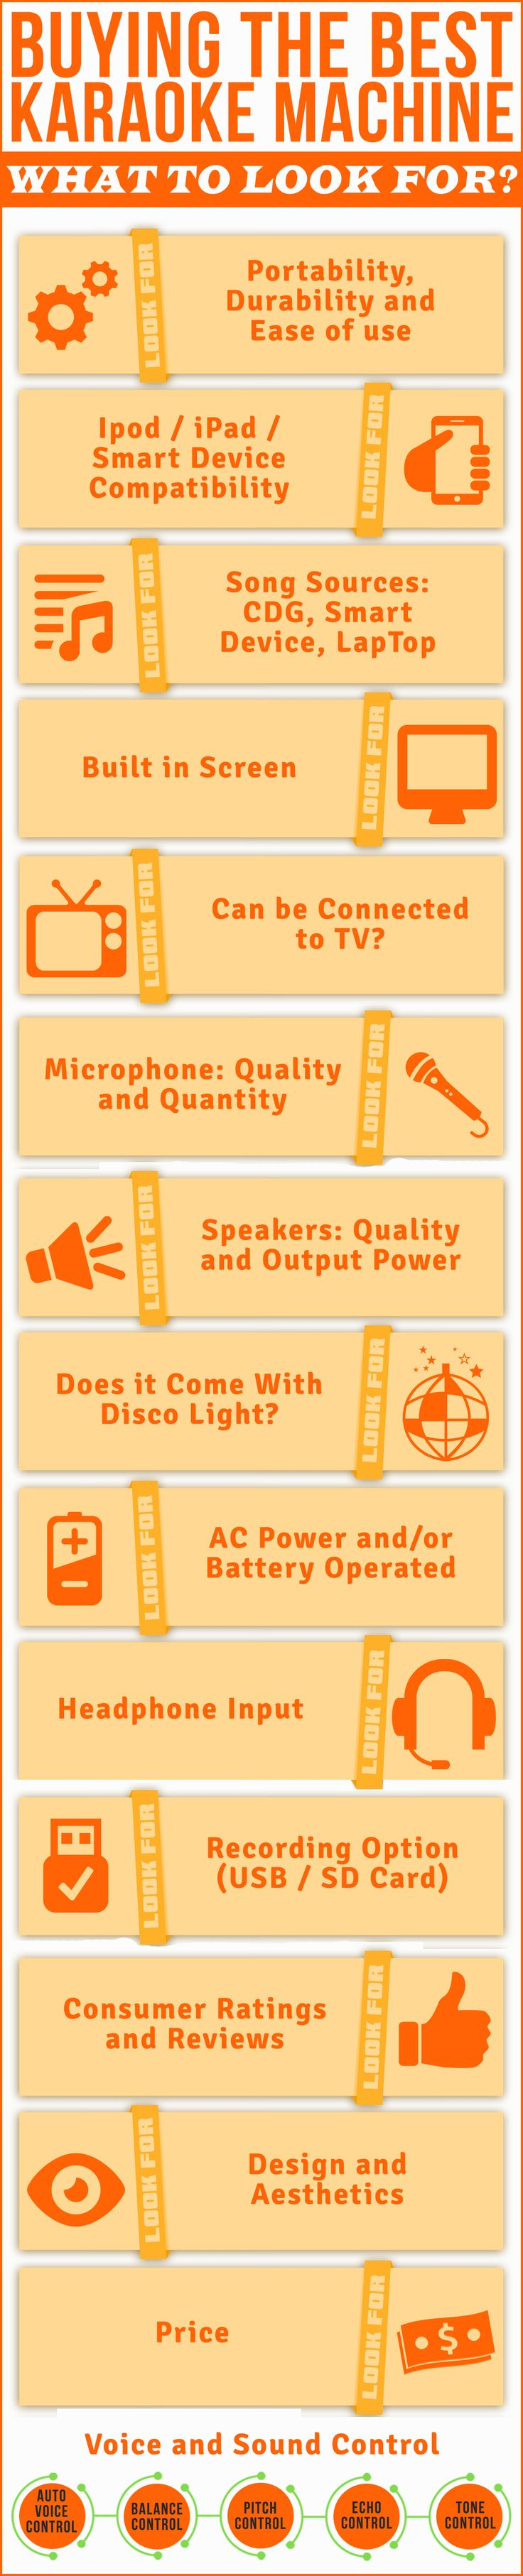 Buying a Karaoke Machine can sometimes be tiring and confusing. It's not easy to know what features to look for and what specifications to have in mind. This chart is a great summary of the main features to consider when you are looking for such systems. If you are in search of the best karaoke machine for adults or kids, this is a must have to help you make an informed decision. #infographic